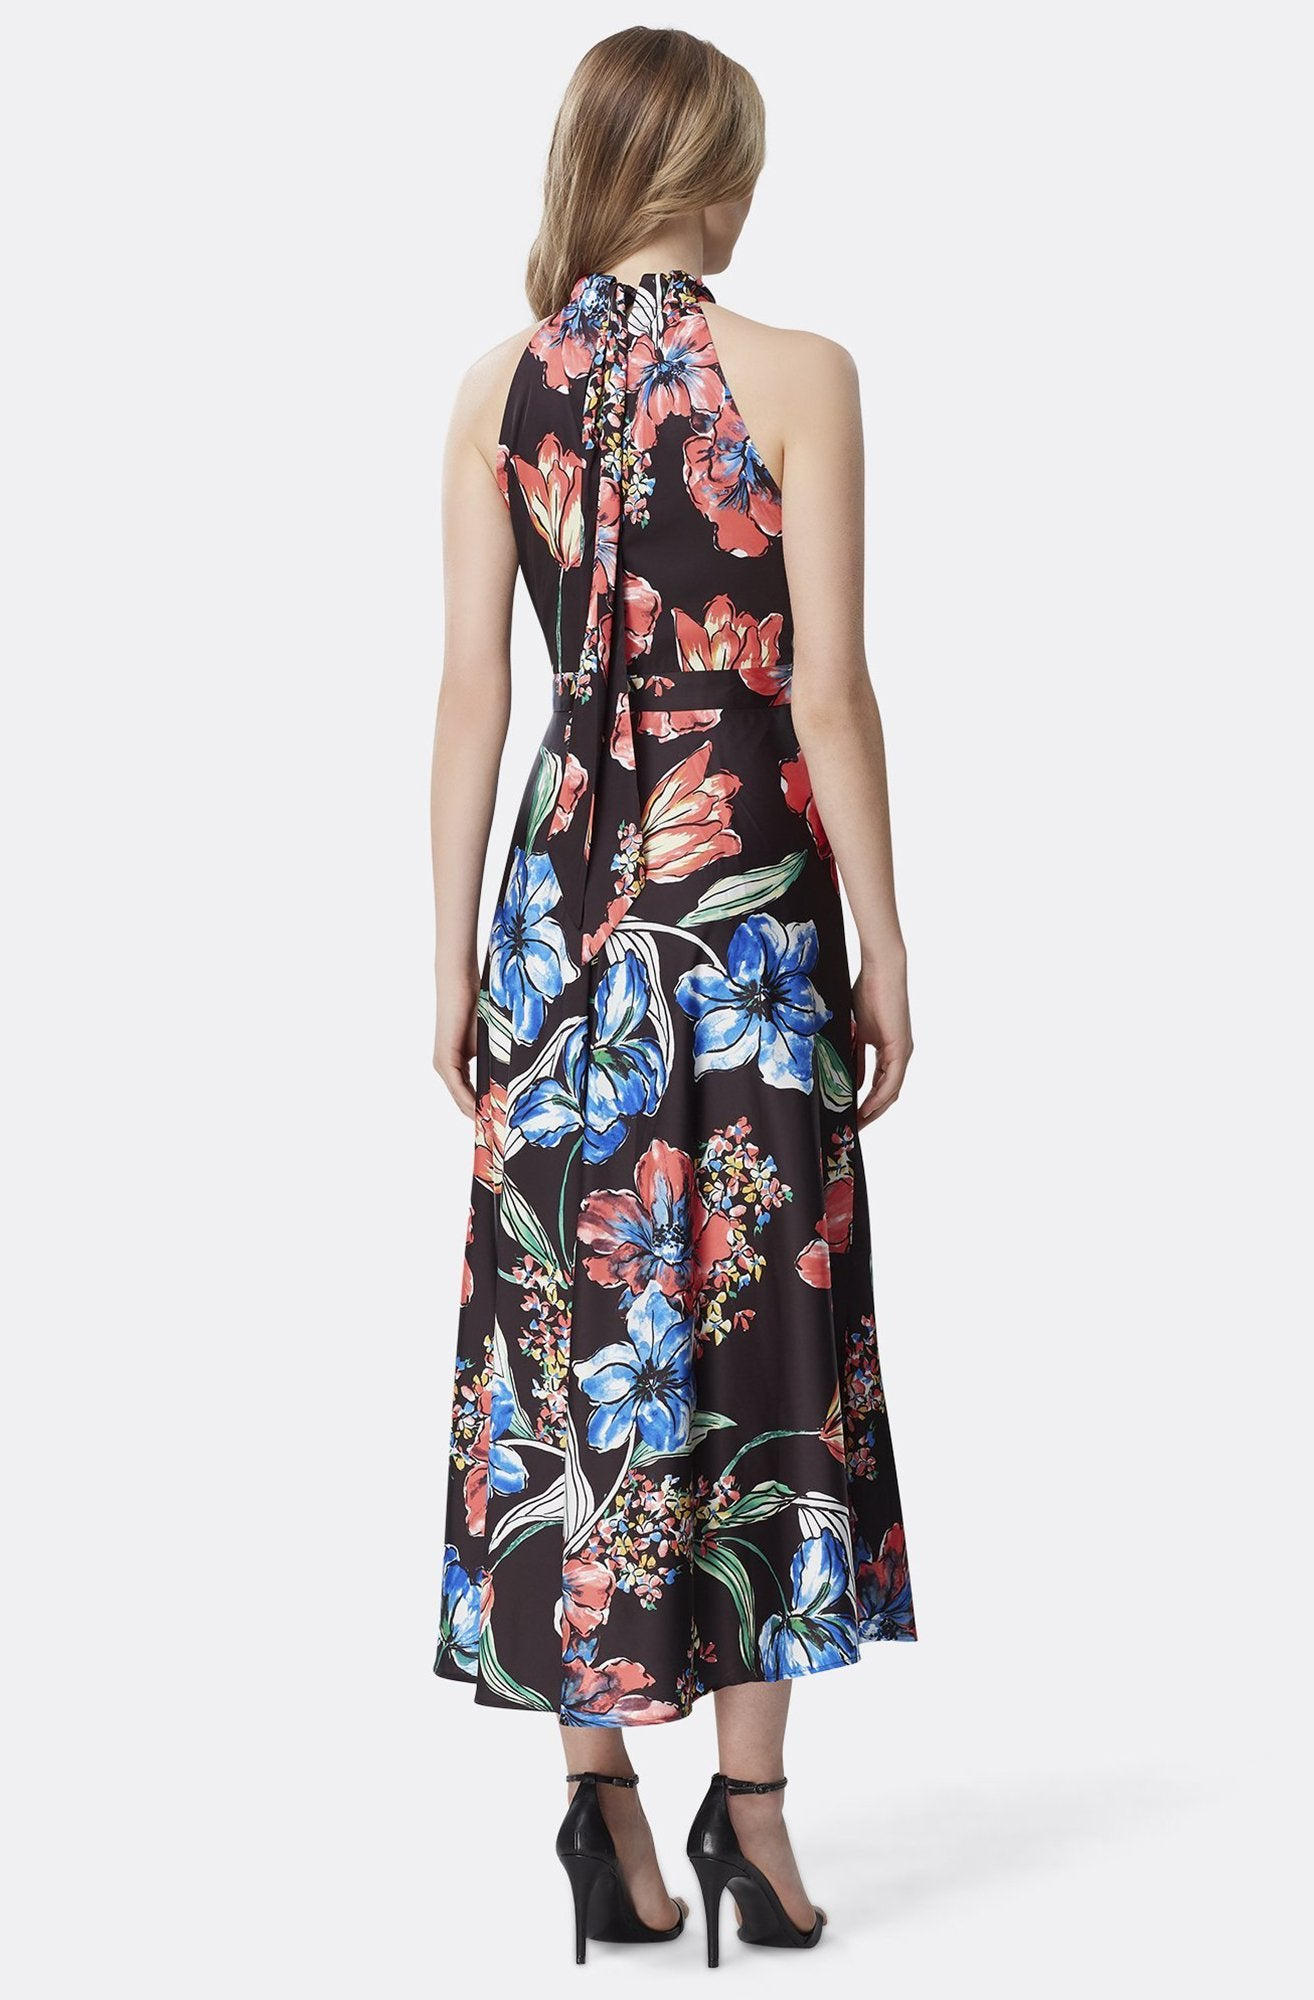 Tahari Asl - TLMU9WD624 Floral Print High Halter A-line Dress In Multi-Color